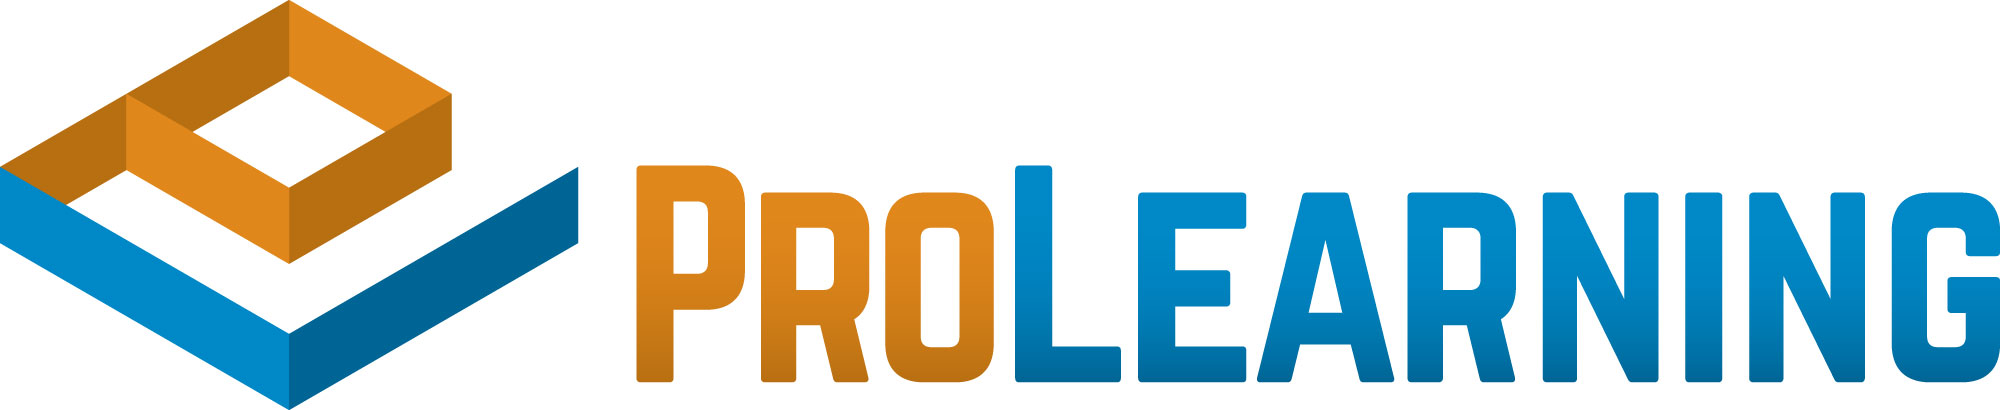 pro-learning-logo-wide-color.jpg